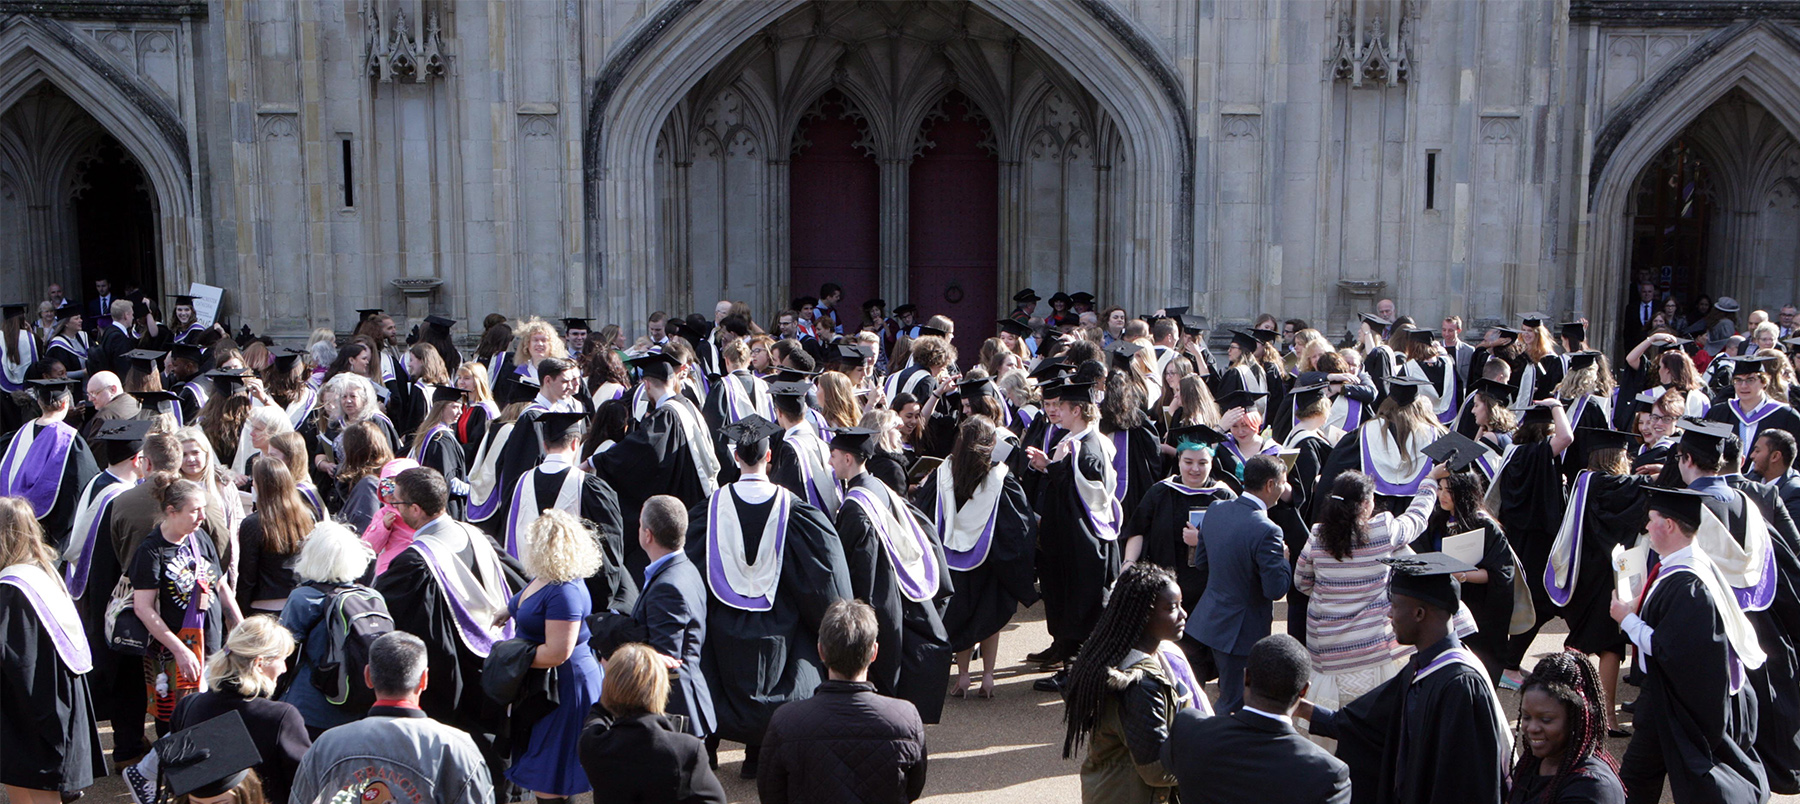 Crowd of graduates and families outside of Cathedral on Graduation